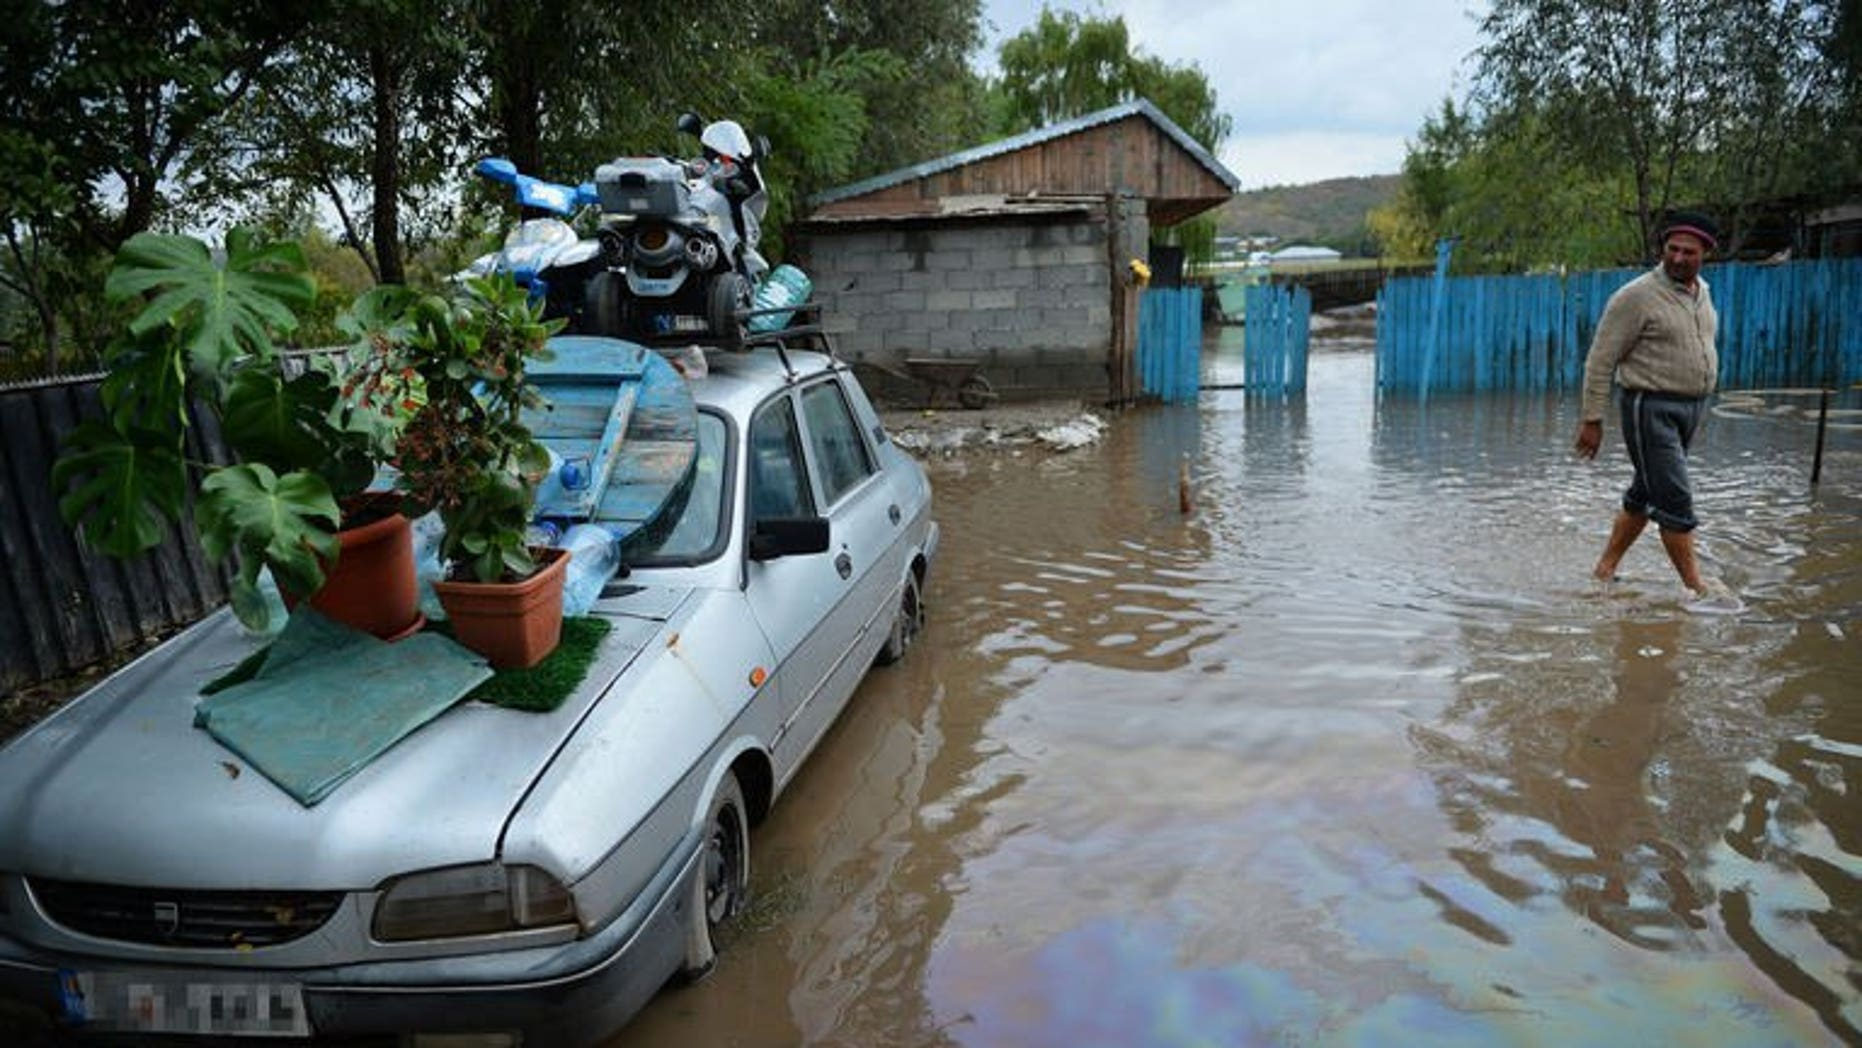 A man walks through flooded courtyard in Slobozia Conachi, eastern Romania on September 14, 2013. Flash floods have killed nine people and forced thousands to flee their homes in eastern Romania in the last four days, the authorities said Sunday.